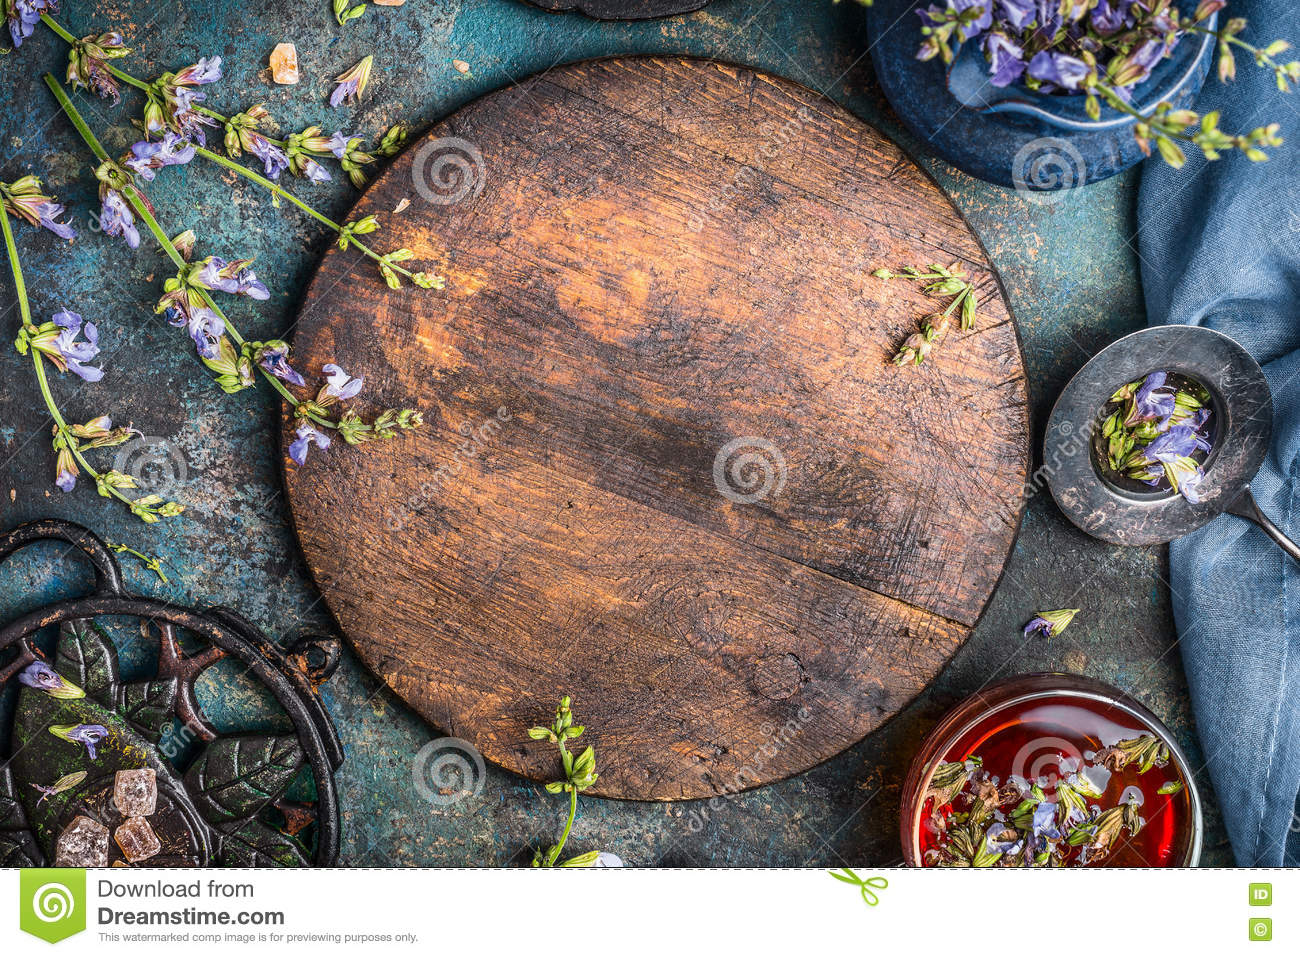 Herbal tea background with round wooden board, cup of tea and various flowers and healing herbs on dark background, top view